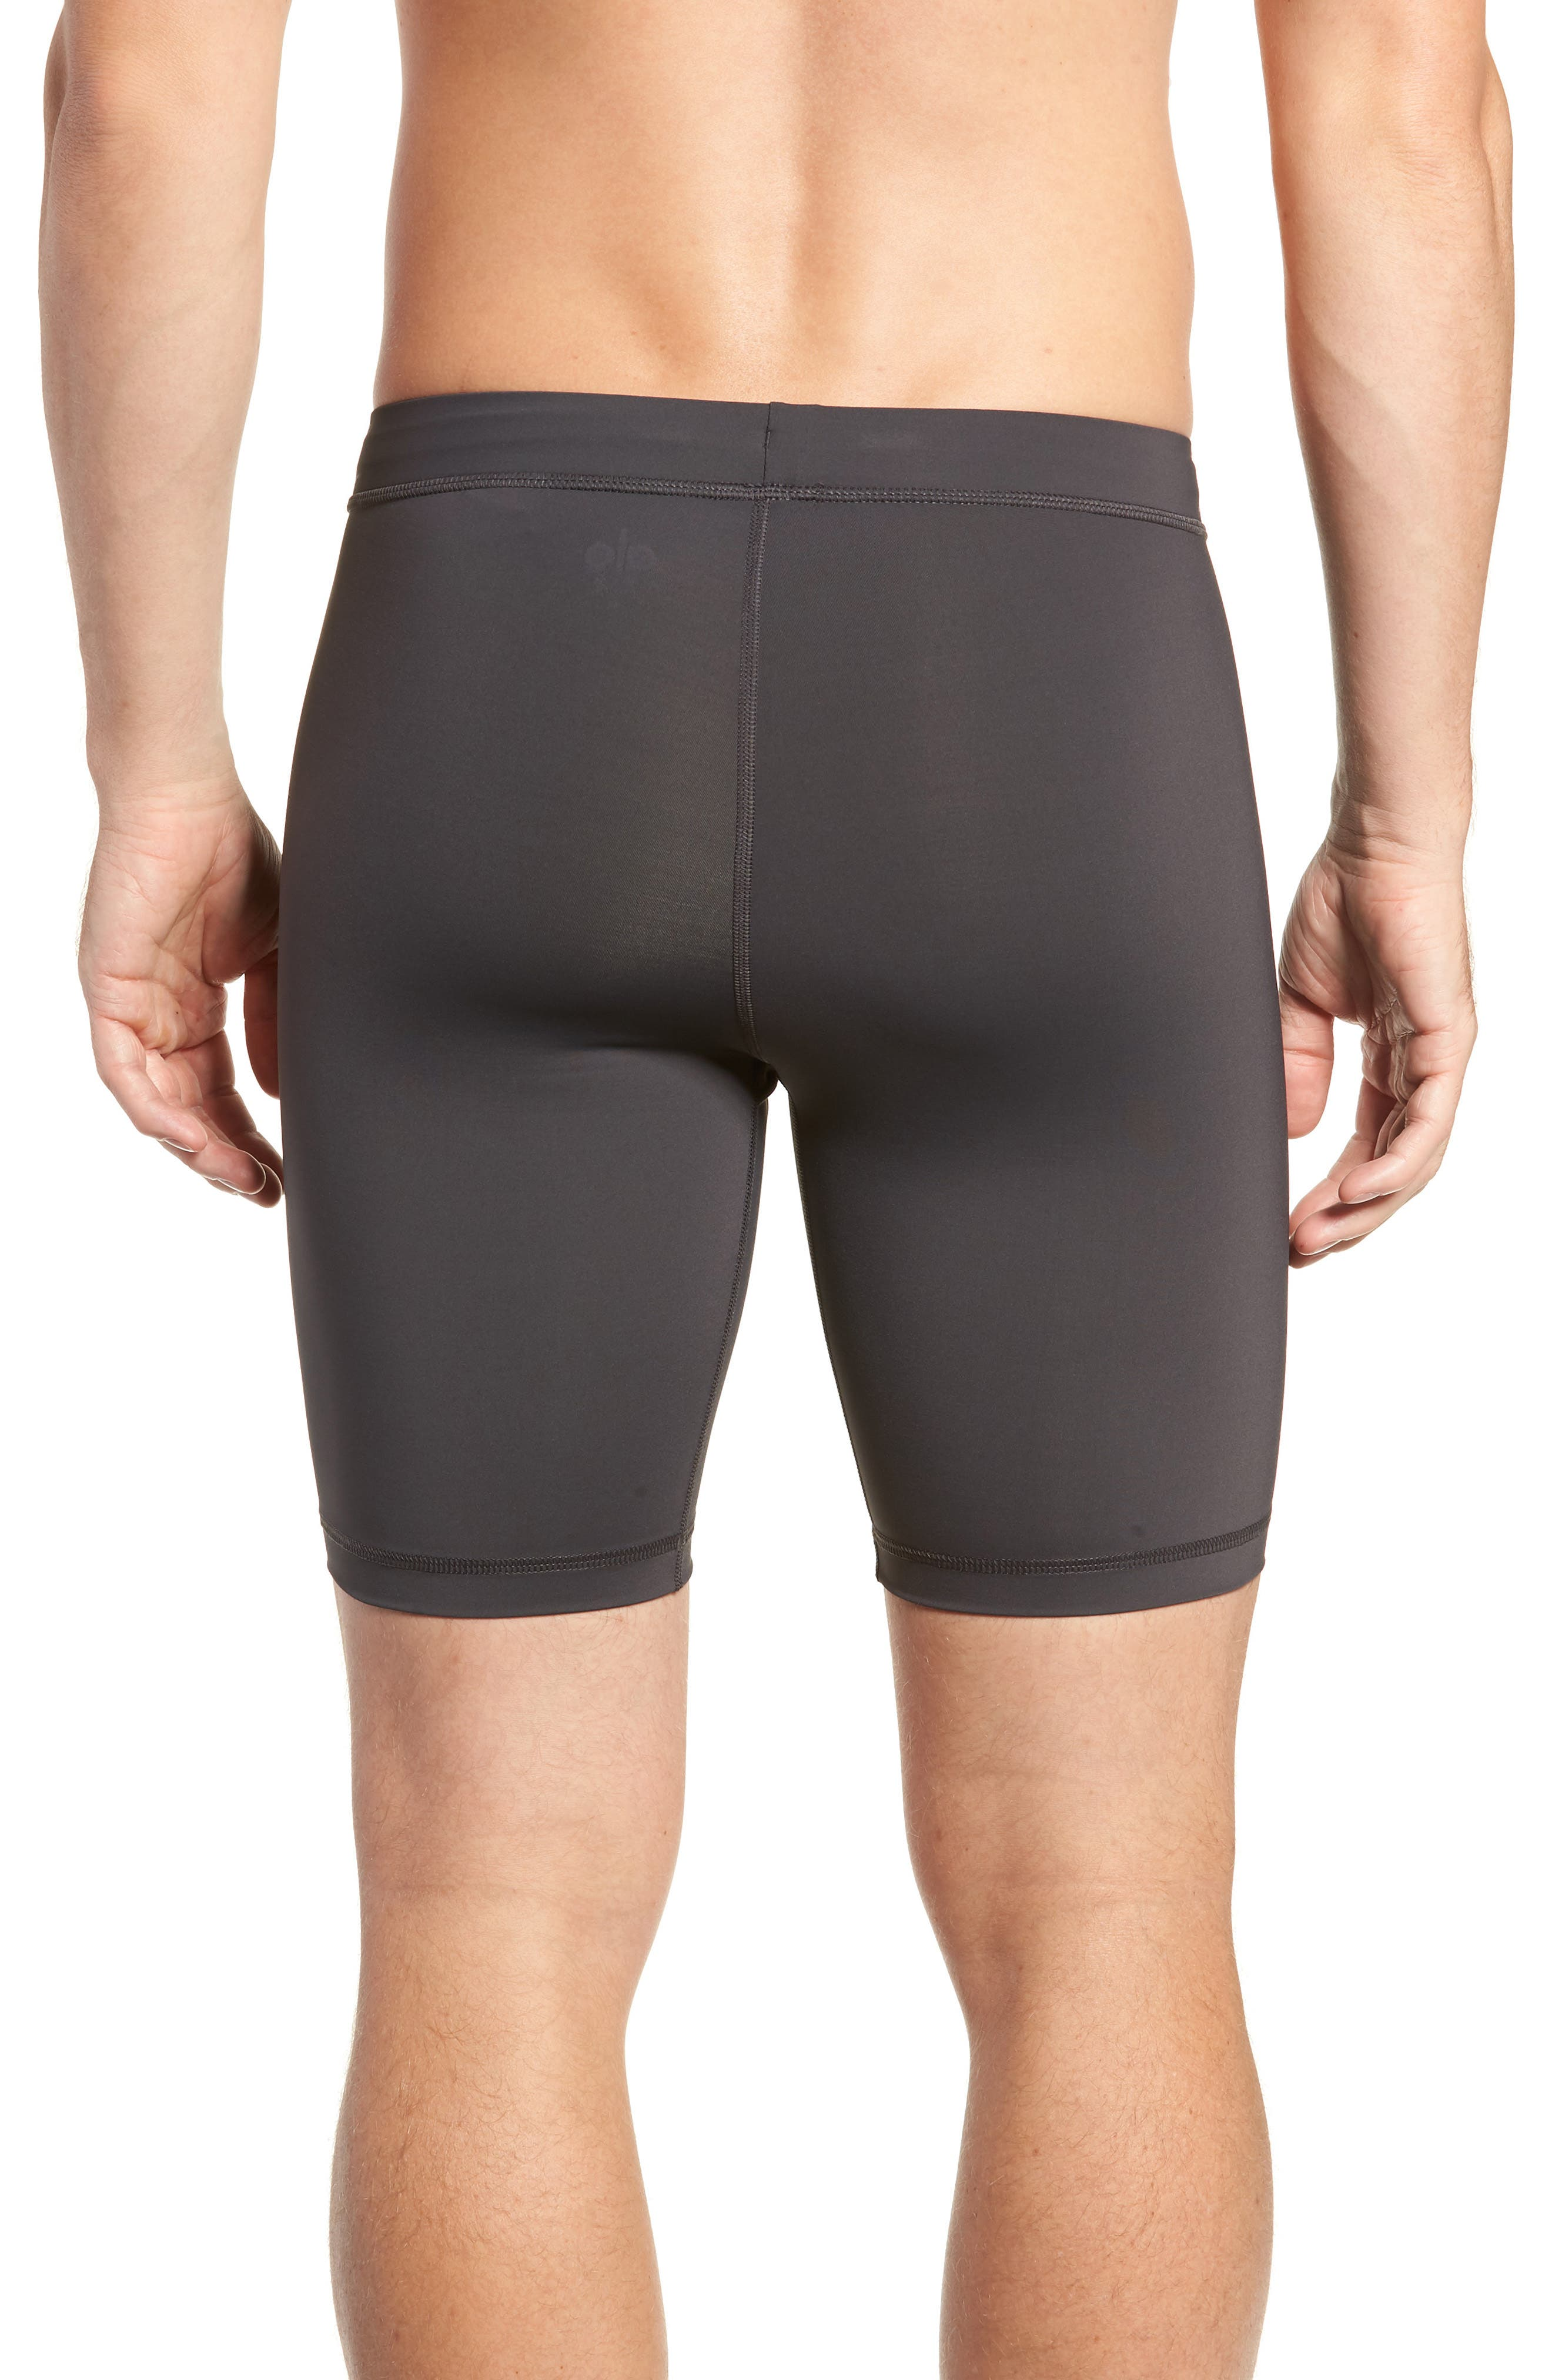 Warrior Compression Shorts,                             Alternate thumbnail 2, color,                             GRAPHITE